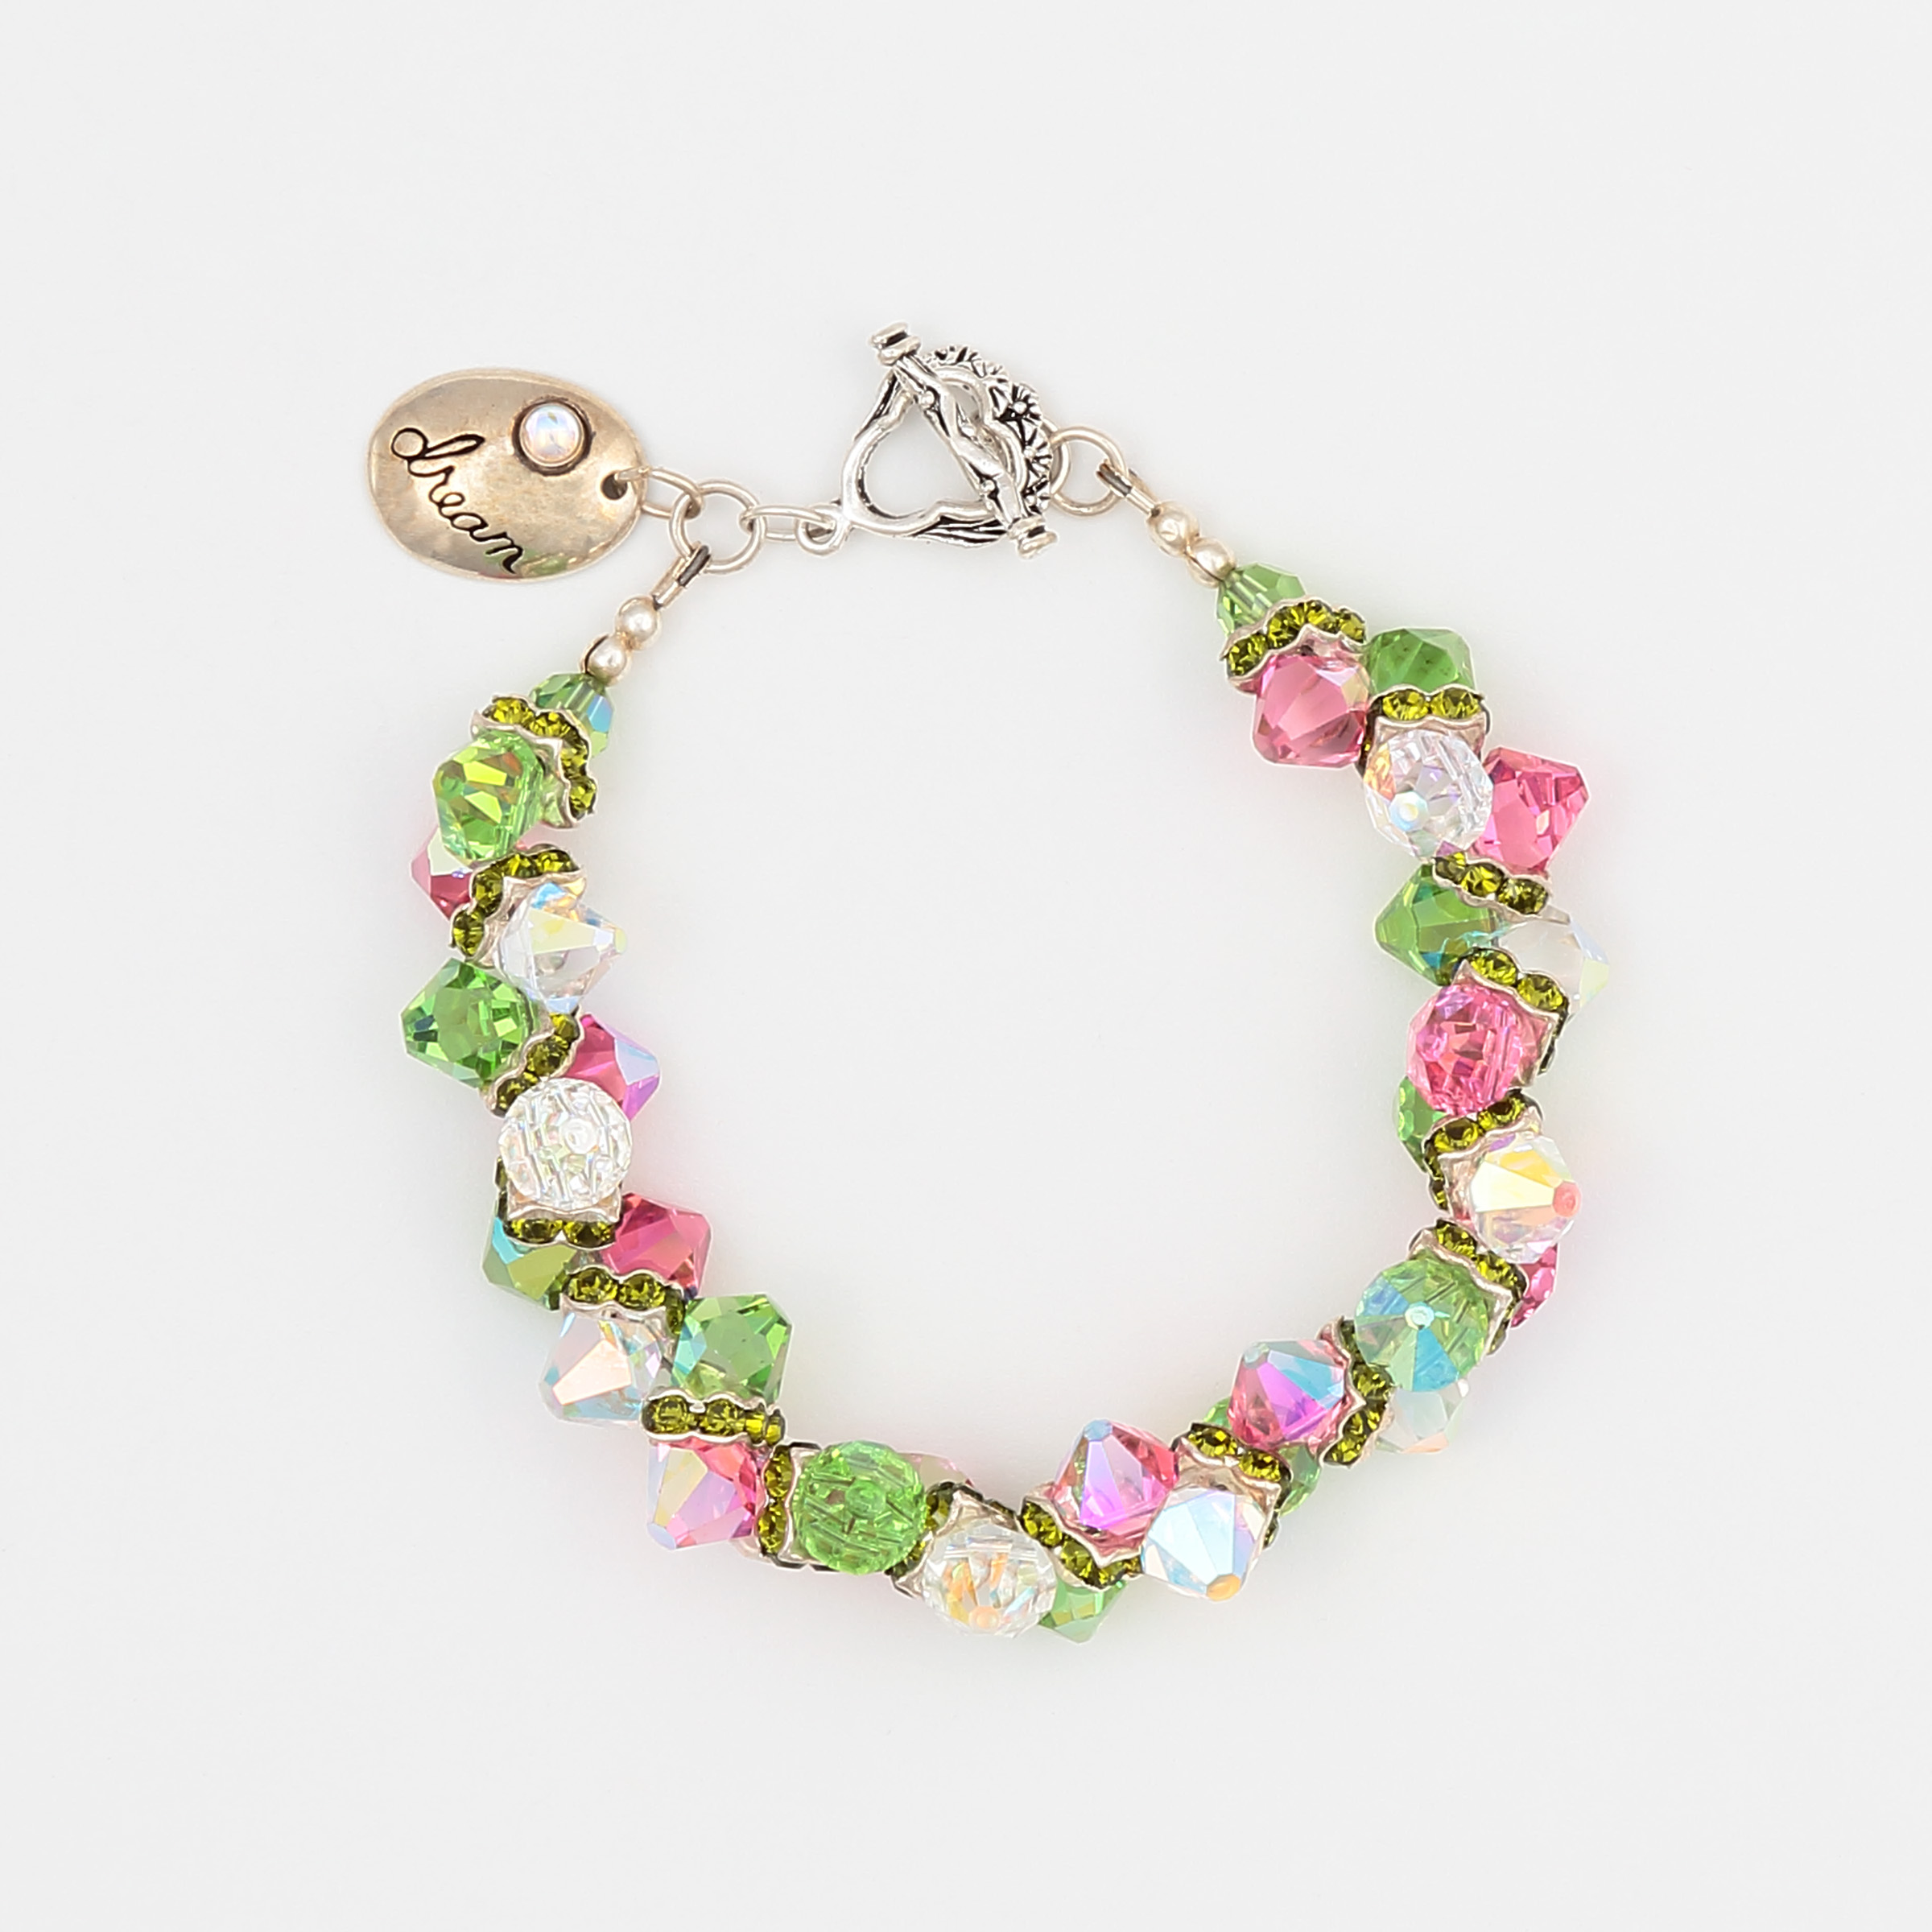 Printemps Bracelet- pink, green, and diamond like Swarovski crystals create a fresh sterling silver bracelet